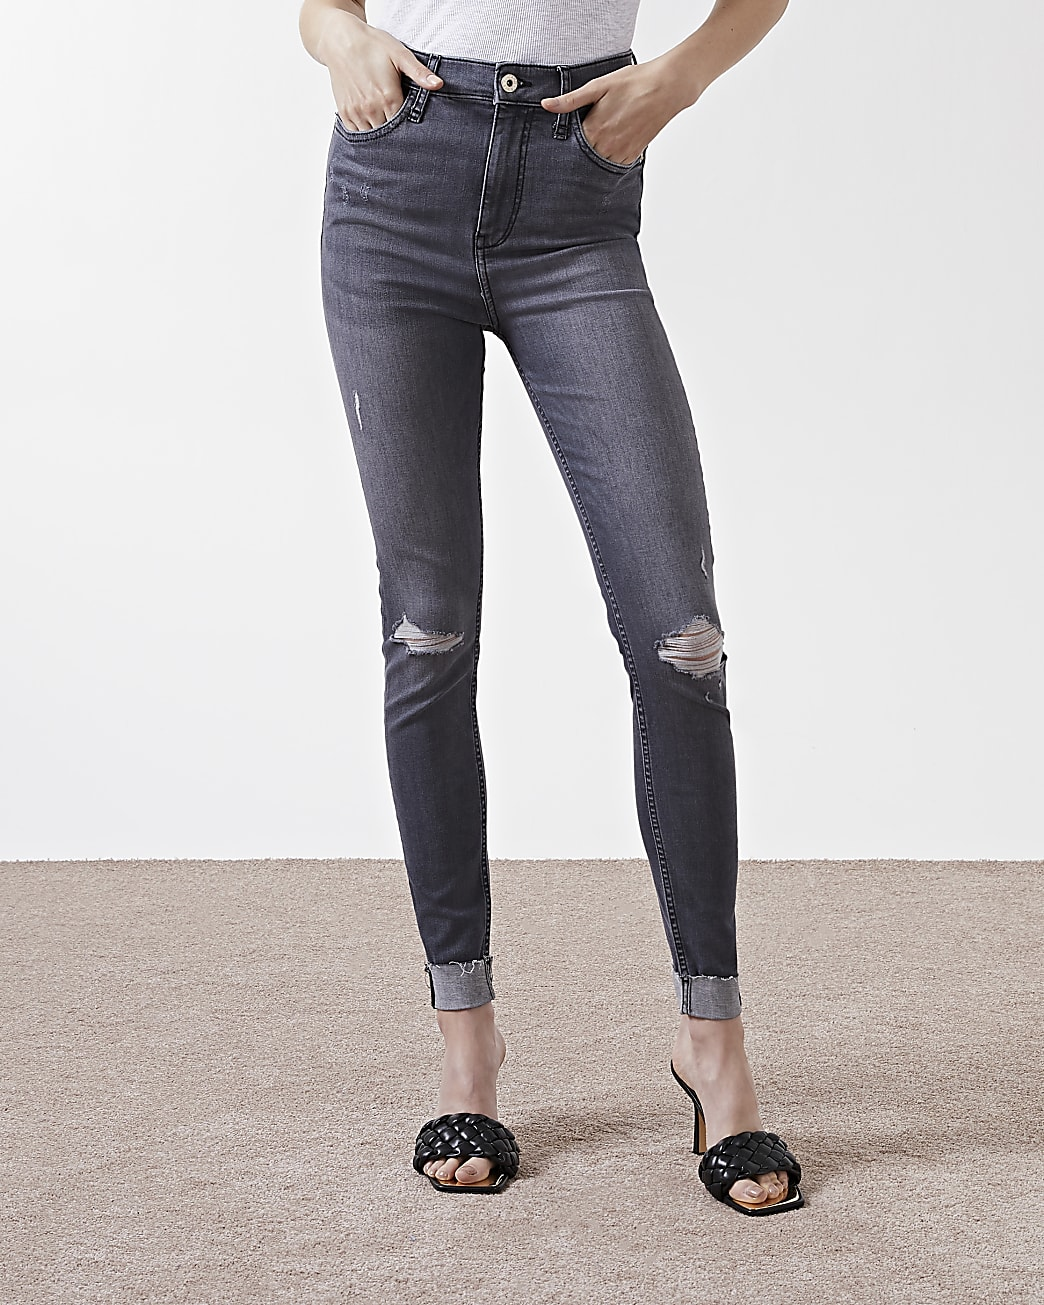 Grey ripped high waisted skinny jeans